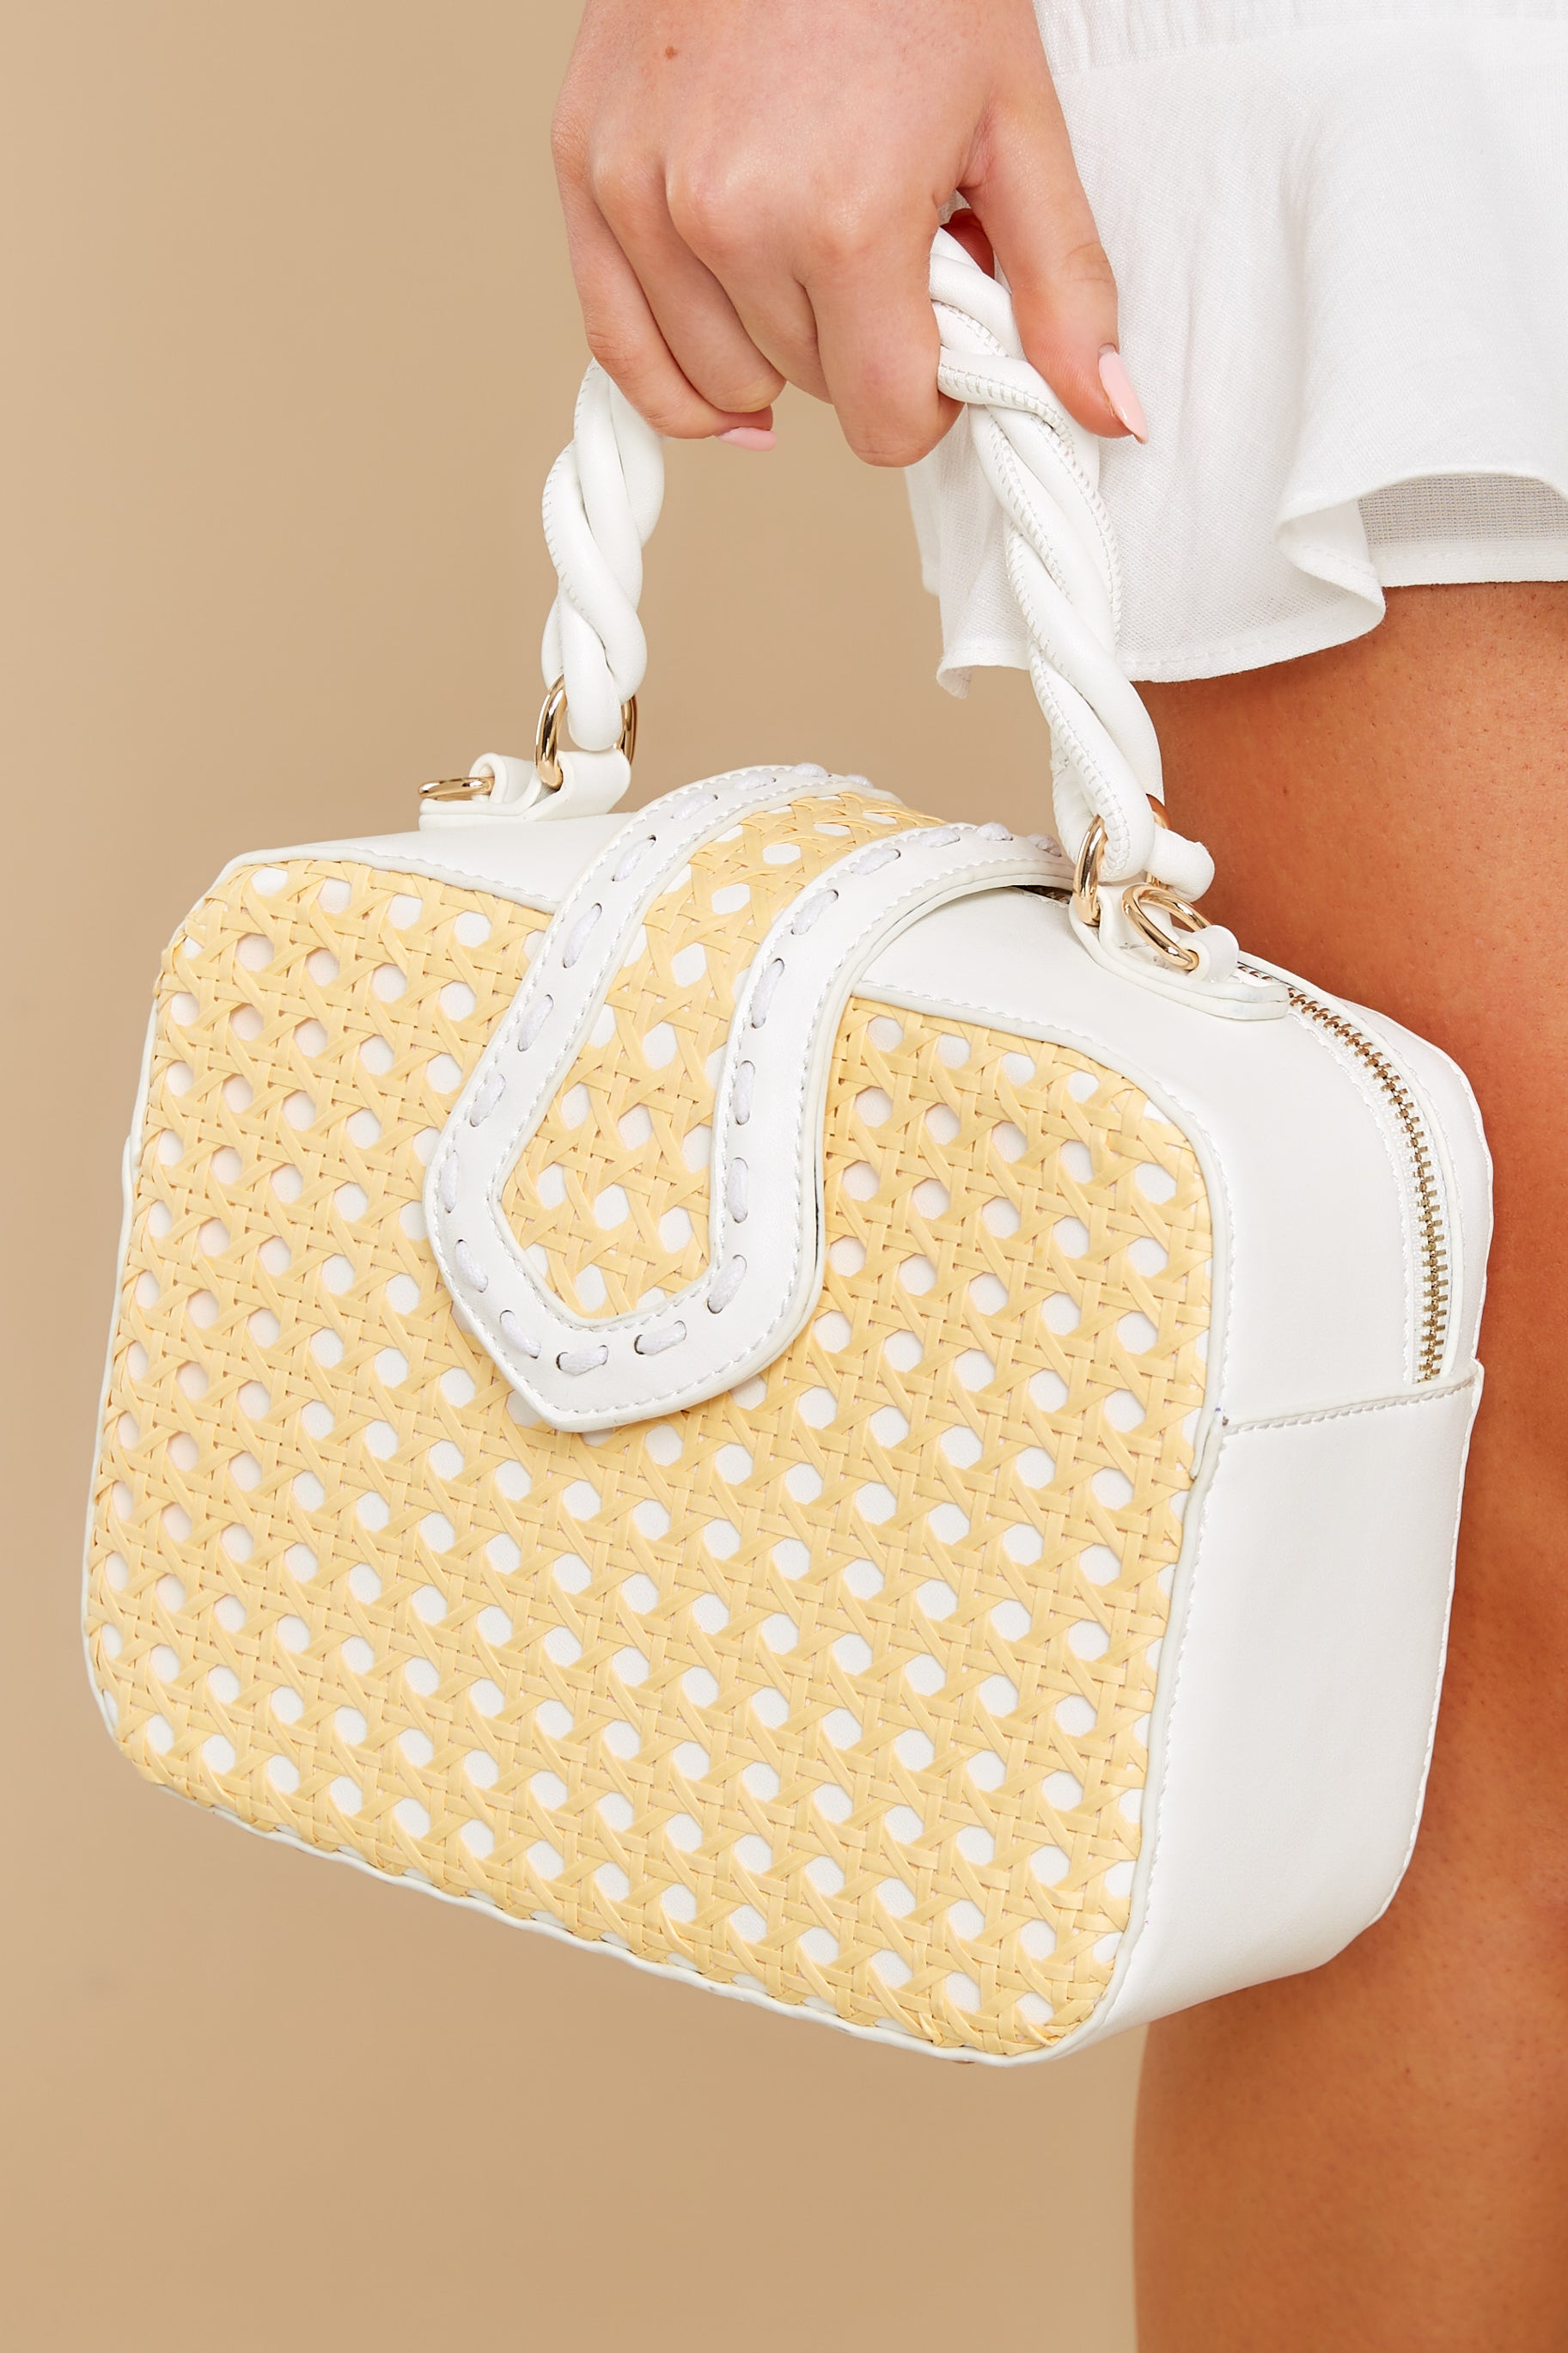 Vintage Handbags, Purses, Bags *New* Its Your Type Yellow And White Bag $42.00 AT vintagedancer.com